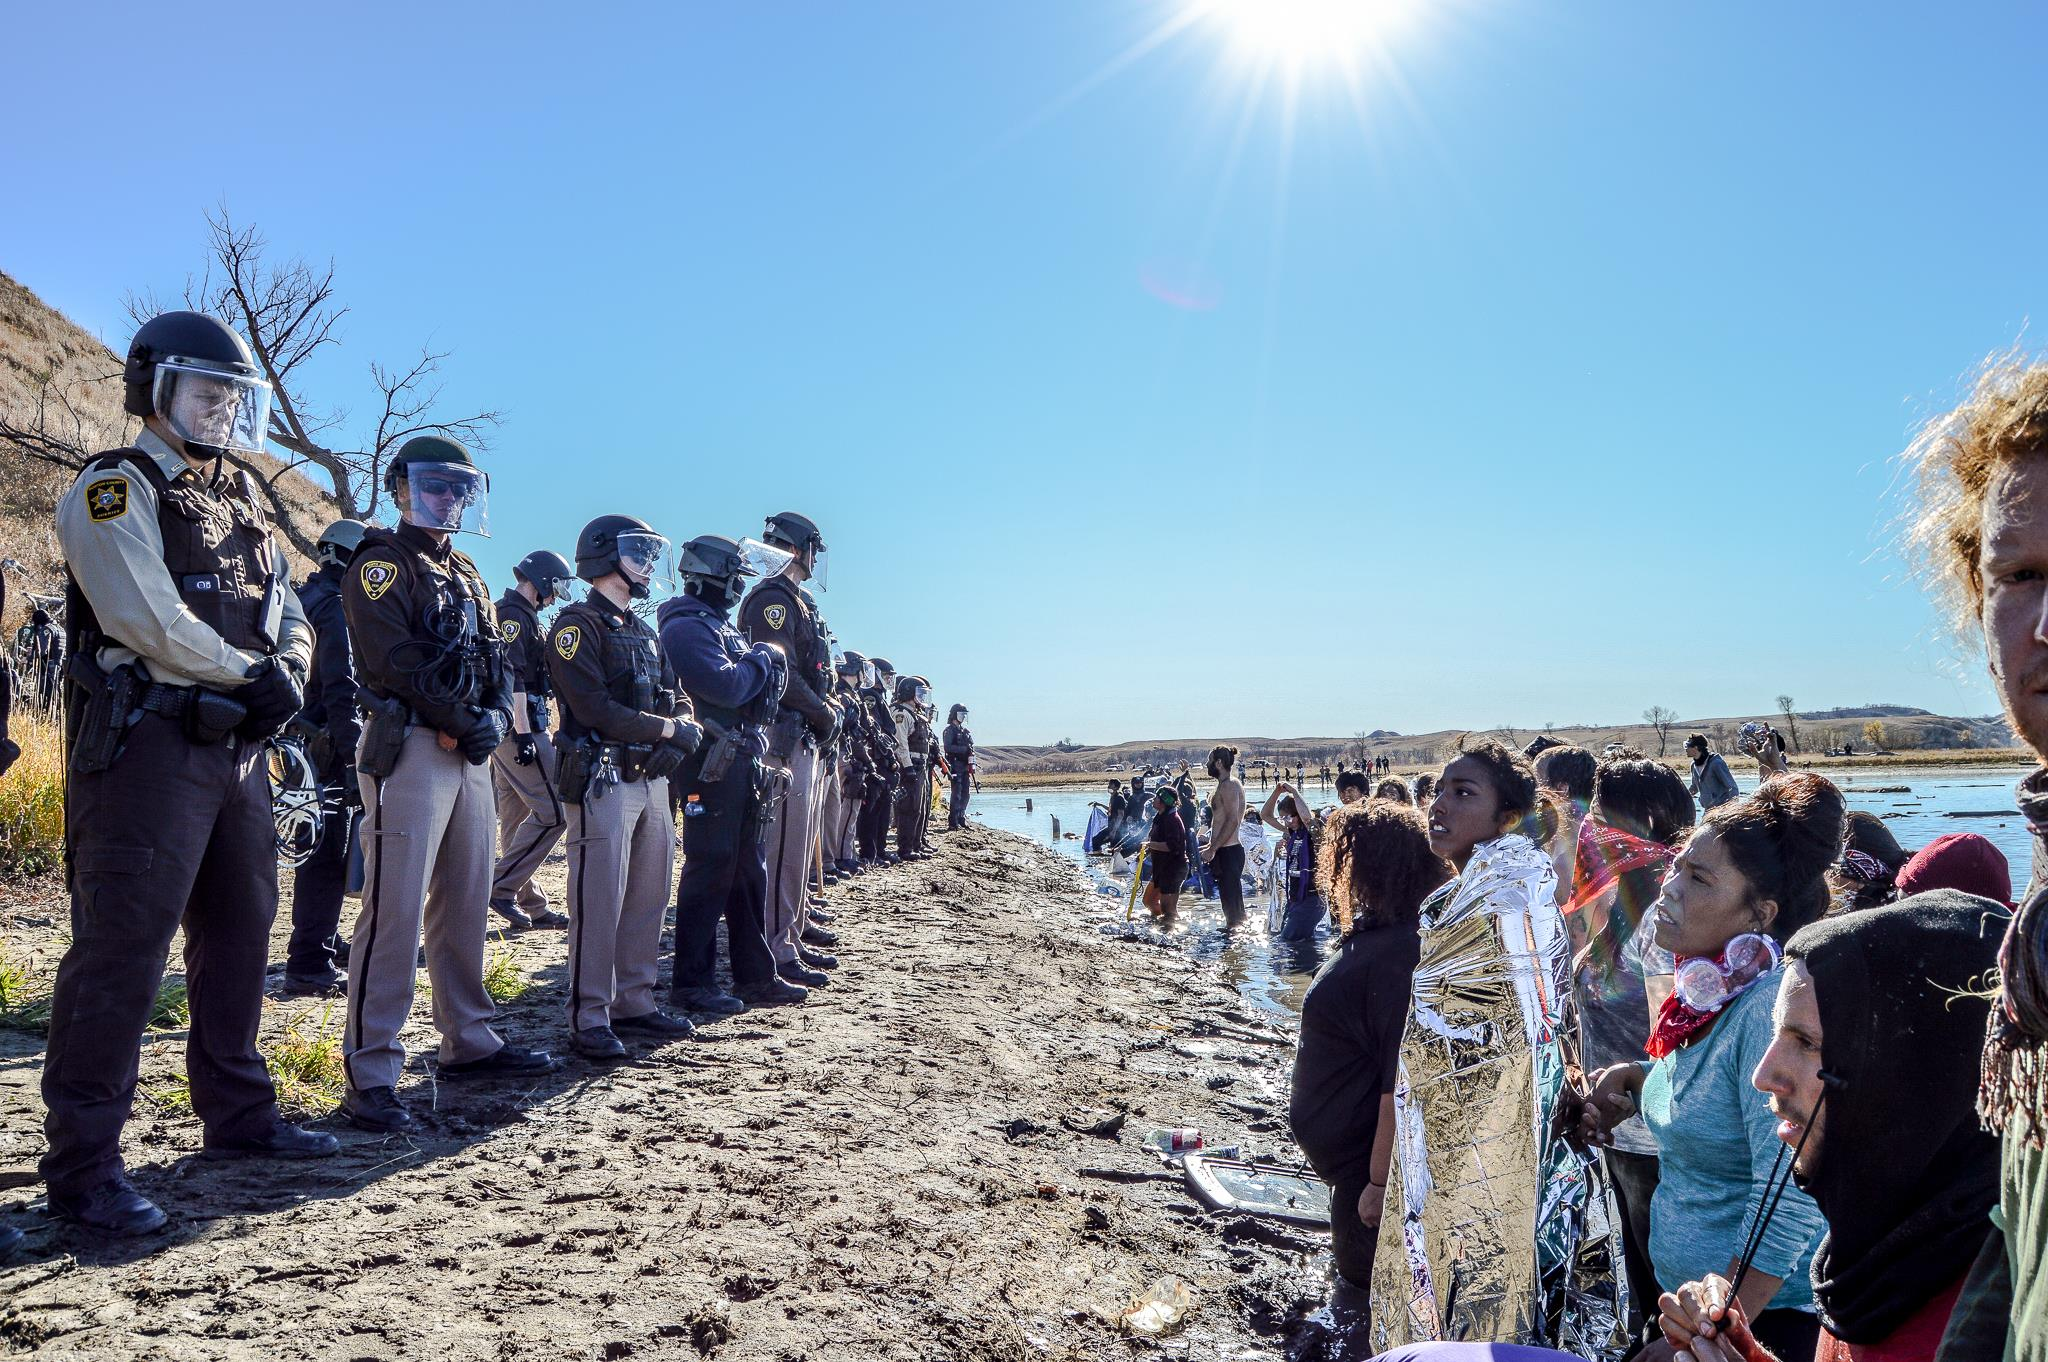 Ivan Star Comes Out: #NoDAPL crackdown hinders reconciliation efforts